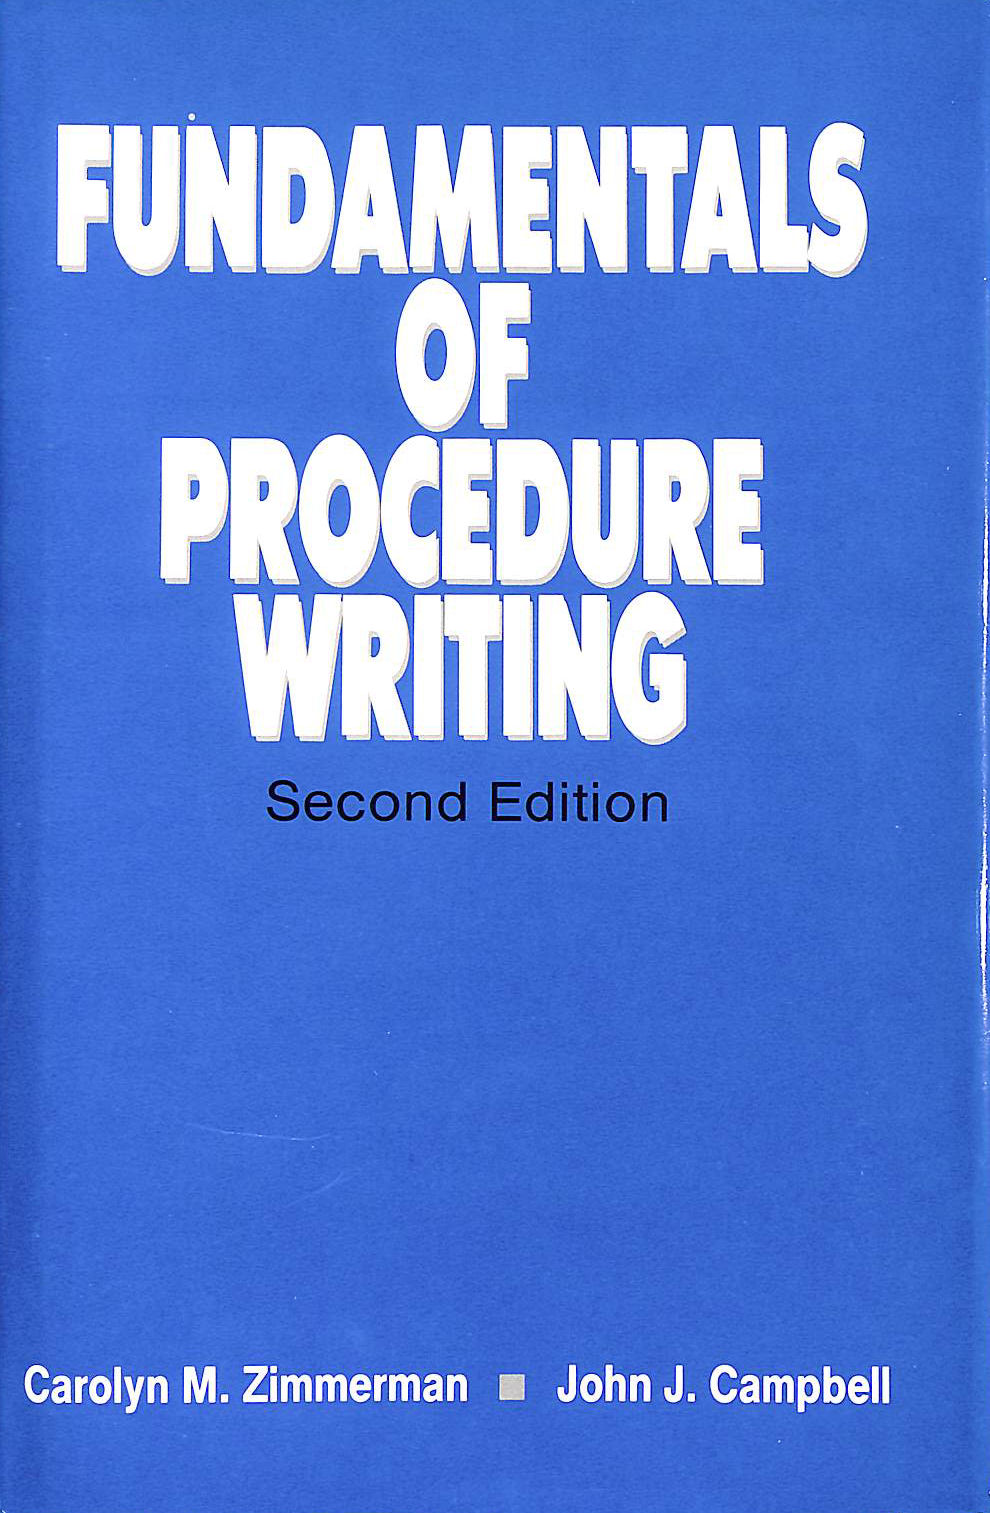 Image for Fundamentals of Procedure Writing